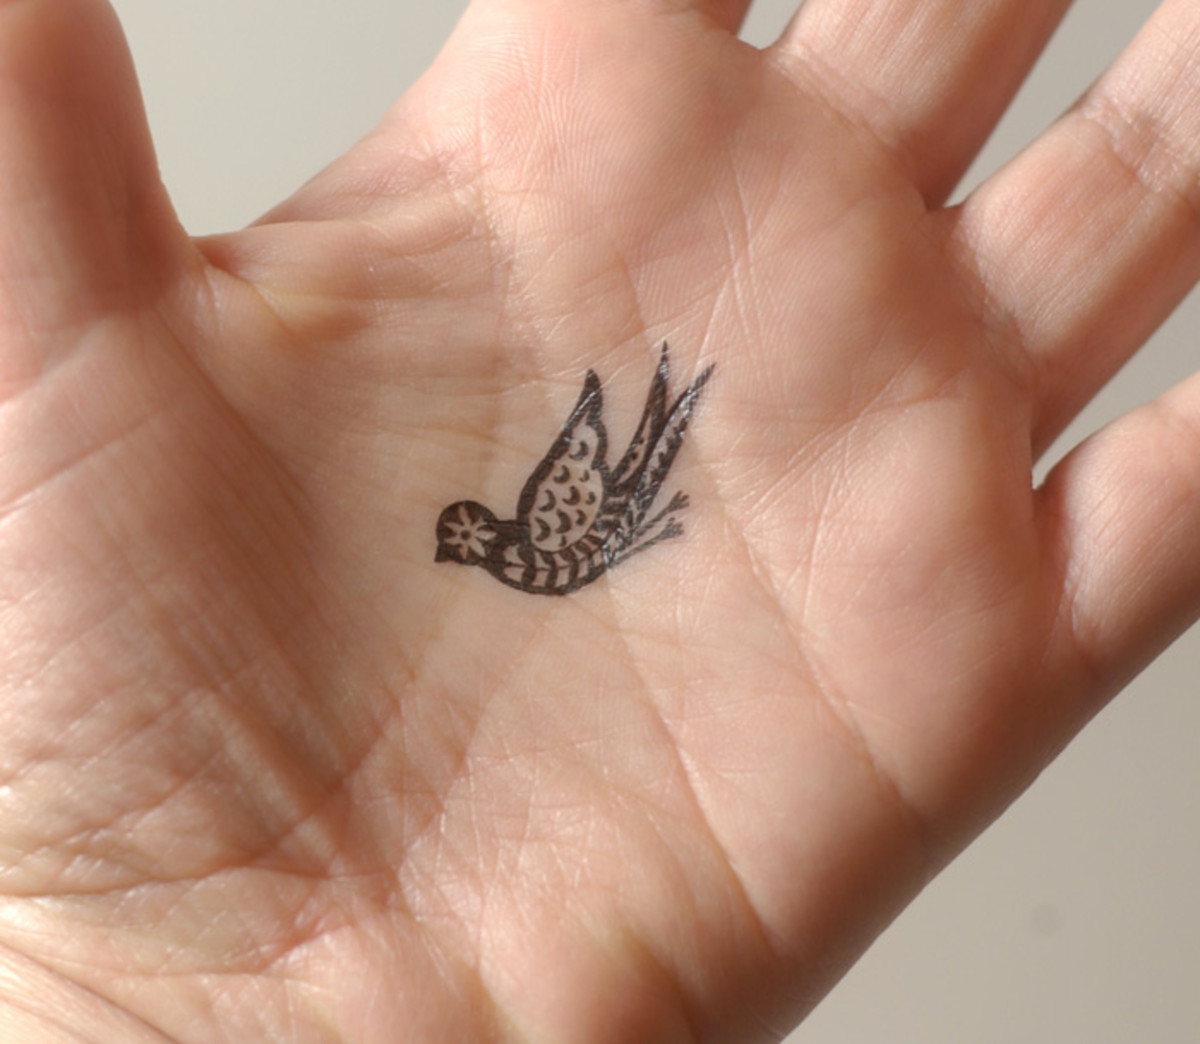 This hand tattoo looks lovely, but will the lines stand the test of time?